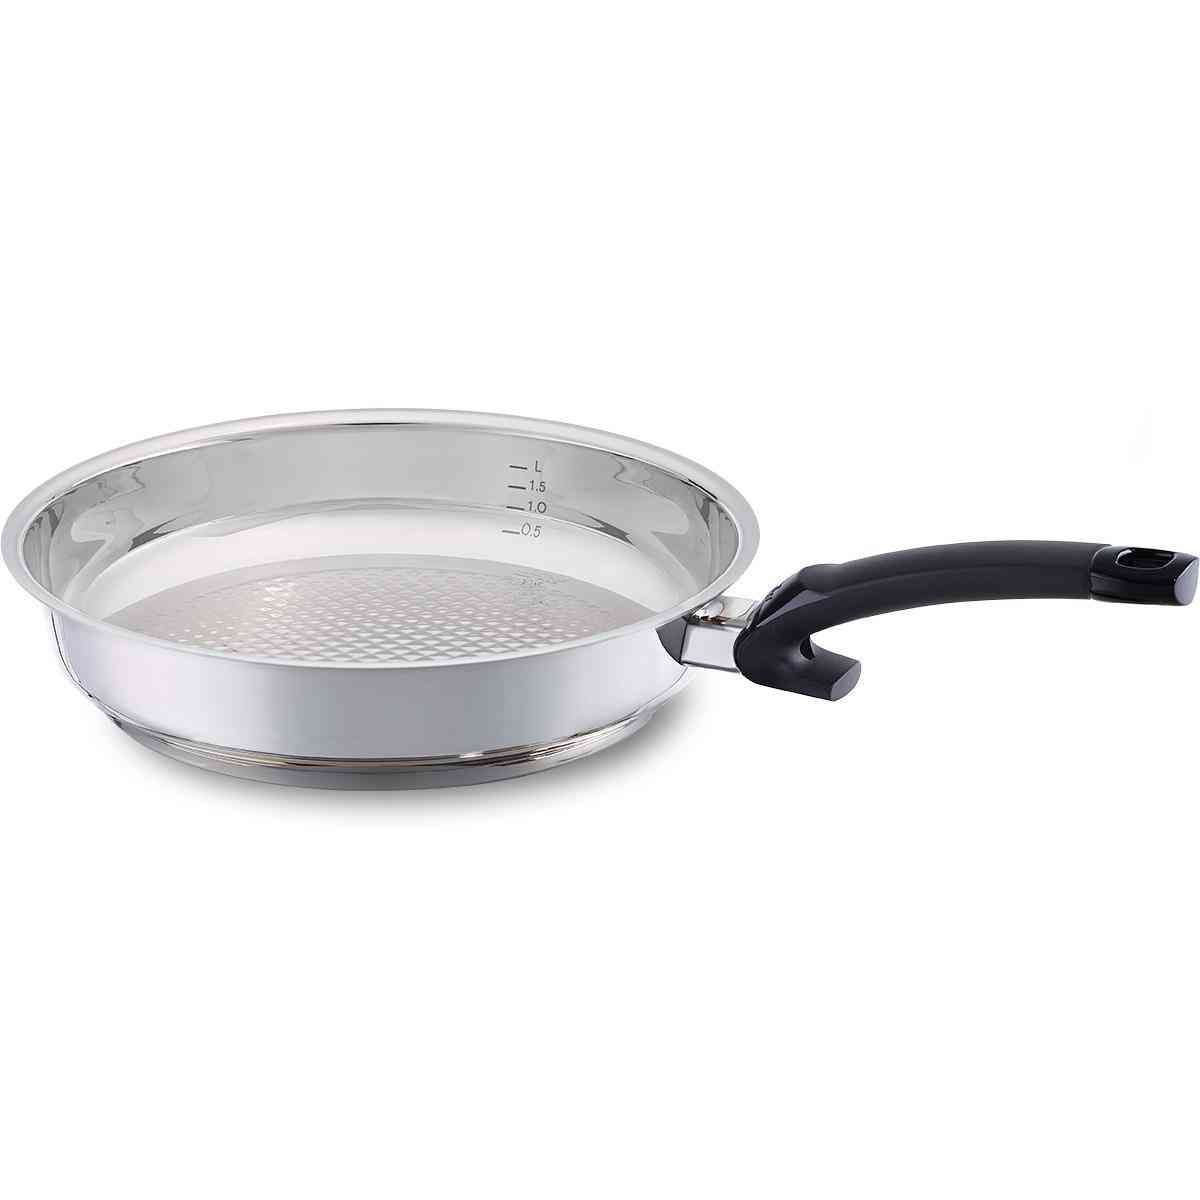 crispy steelux comfort Stainless Steel Frying Pan with Plastic Handle, 9.5 Inch